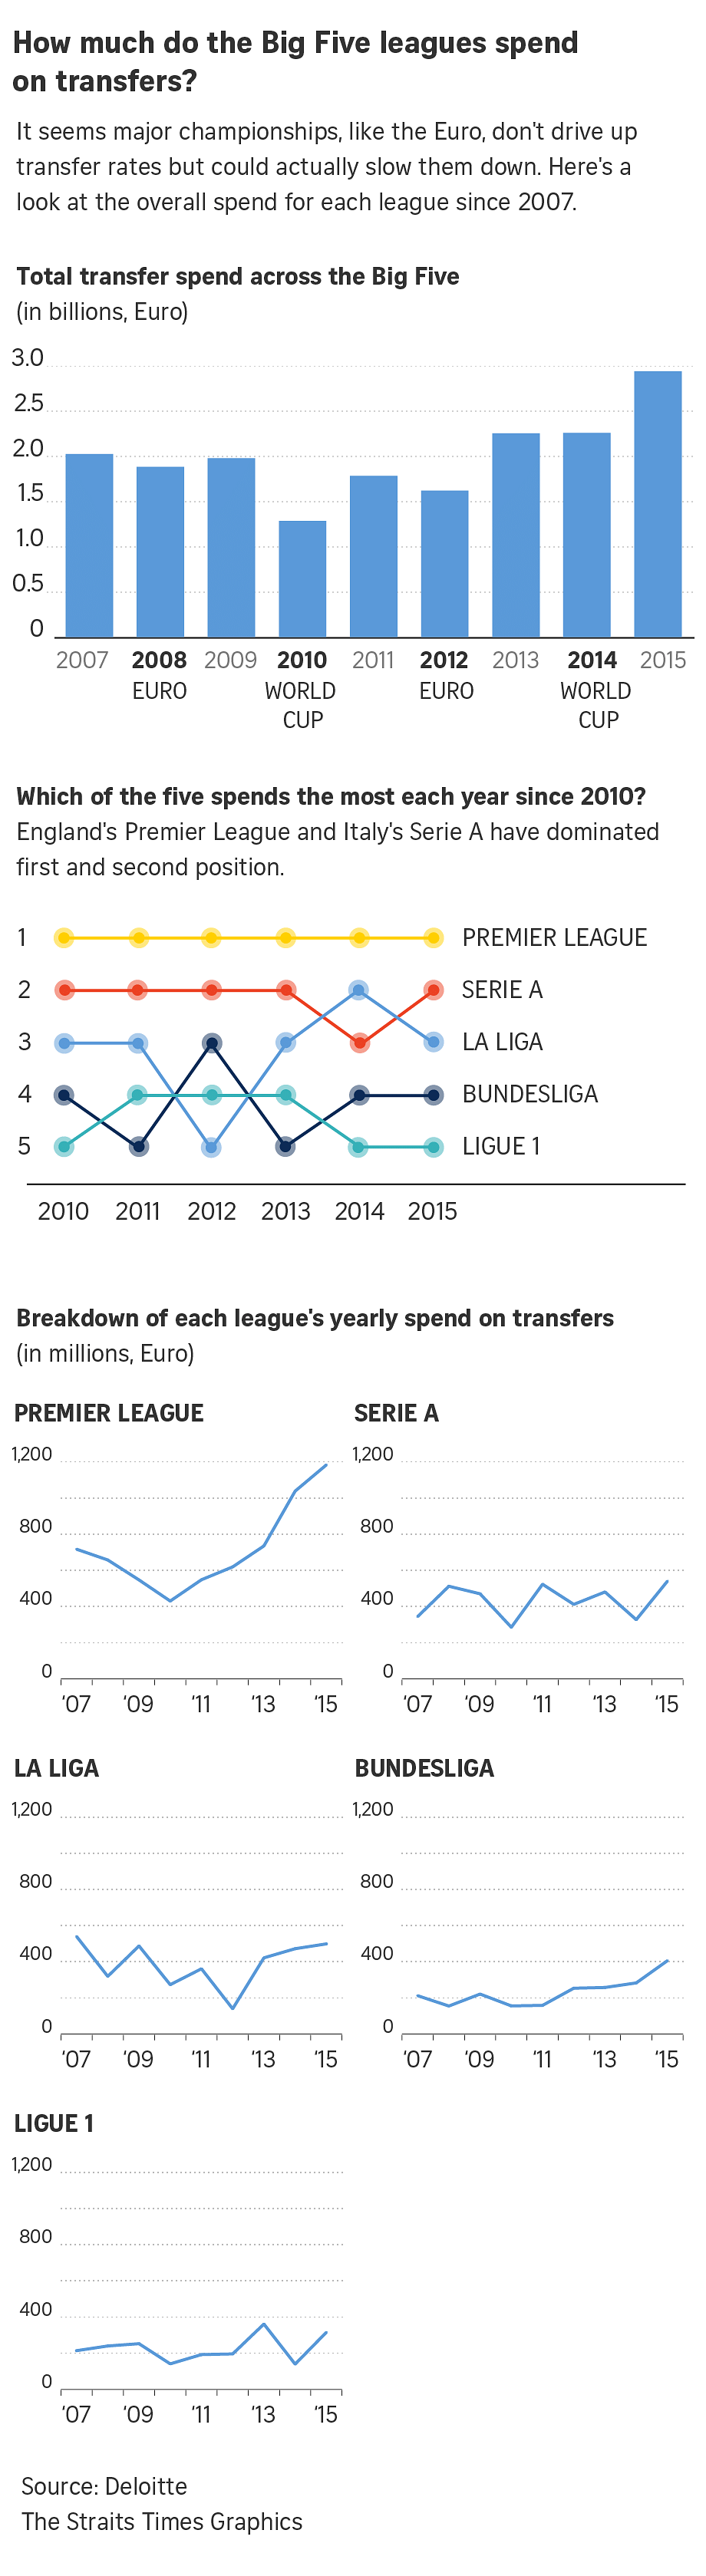 It seems major championships, like the Euro, don't drive up transfer rates but could actually slow them down. Here's a look at the overall spend for each league since 2007.